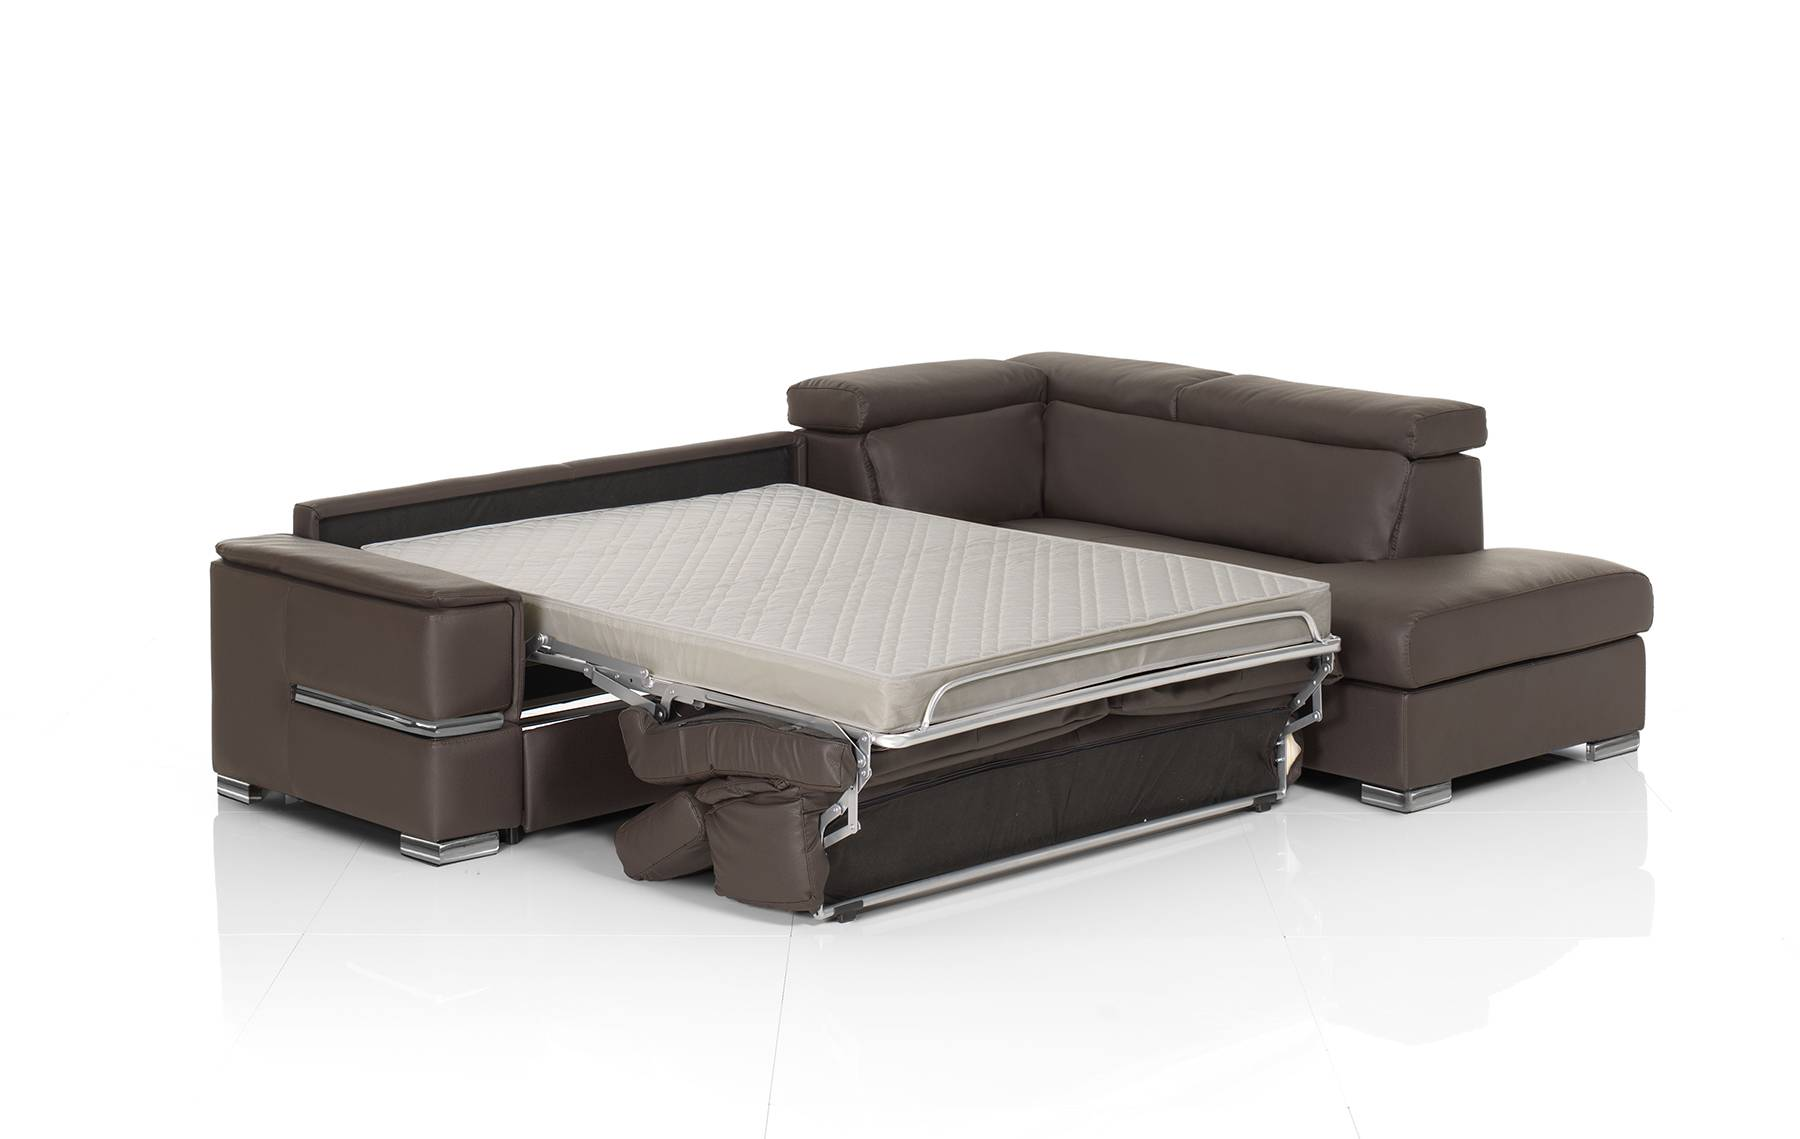 Fold out sleeper sofa brown leather sectional sofa with for Sectional sofa with fold out bed